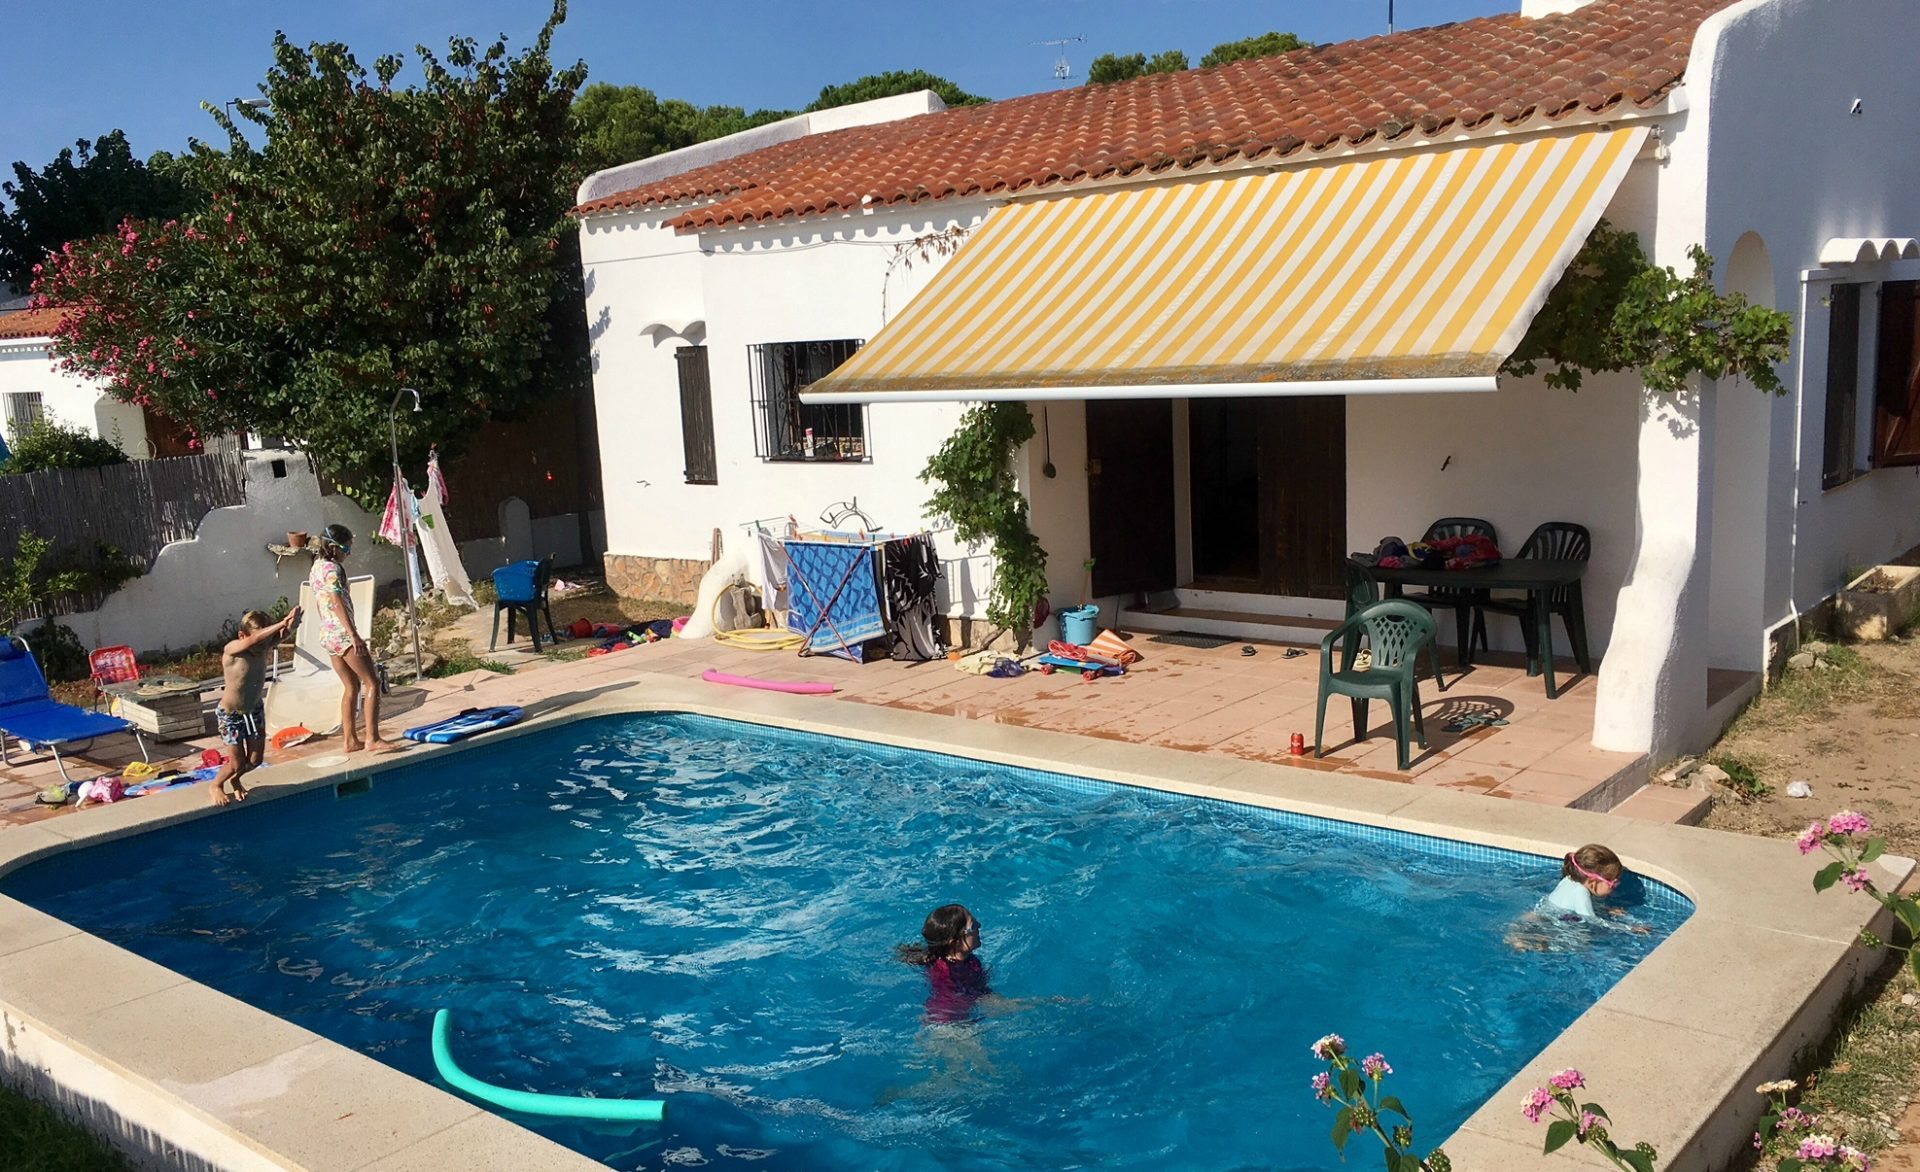 The family holiday home in Costa Brava